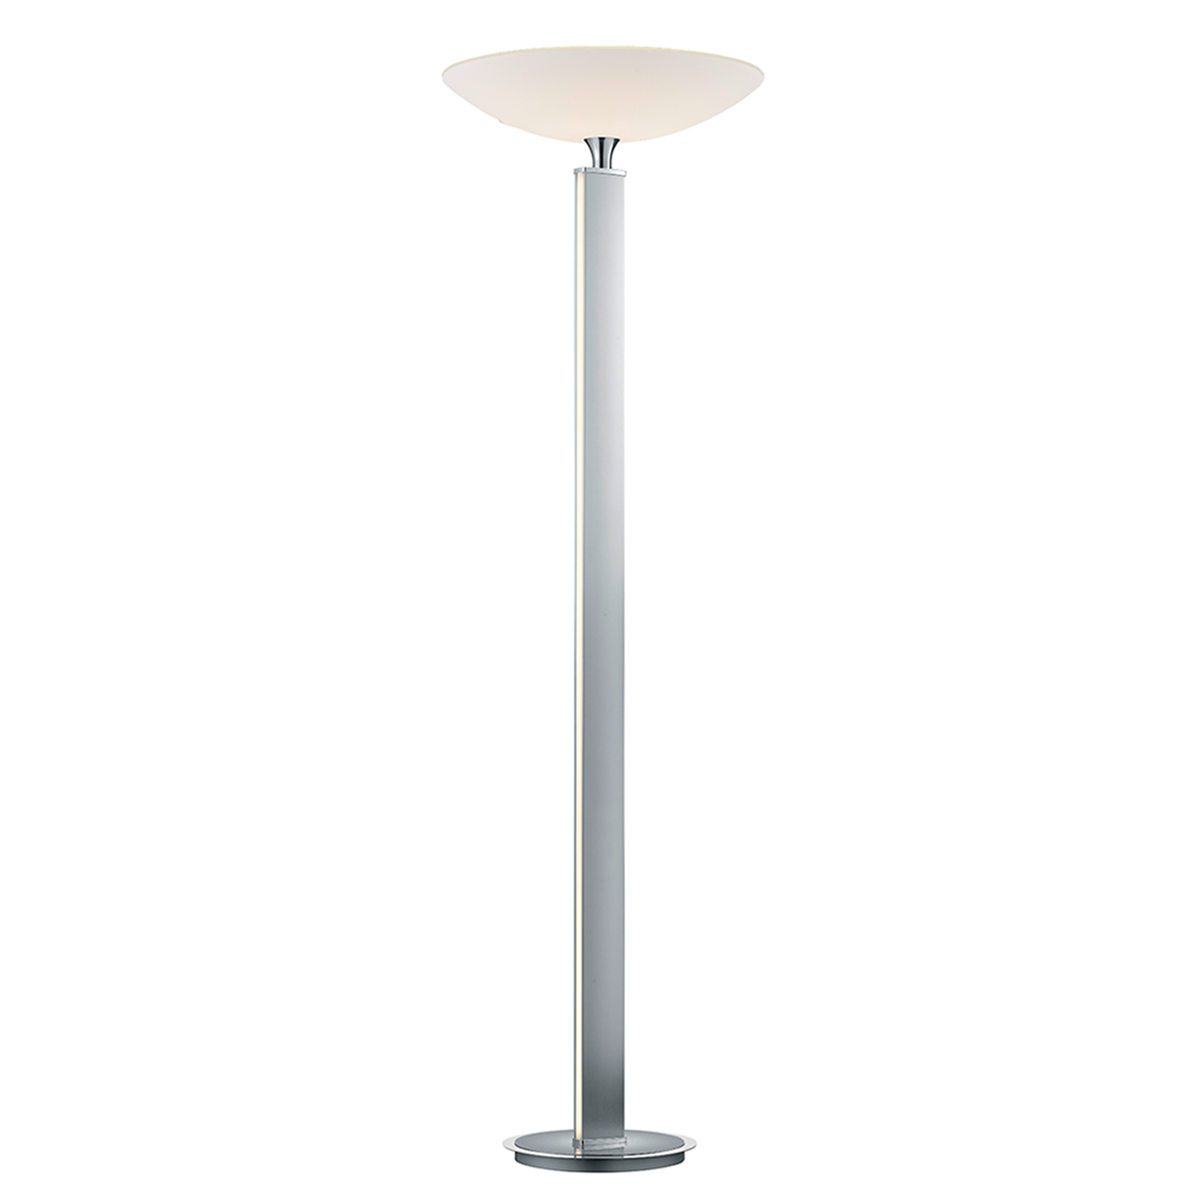 Bankamp Pure F LED Stehleuchte 6084/1-92